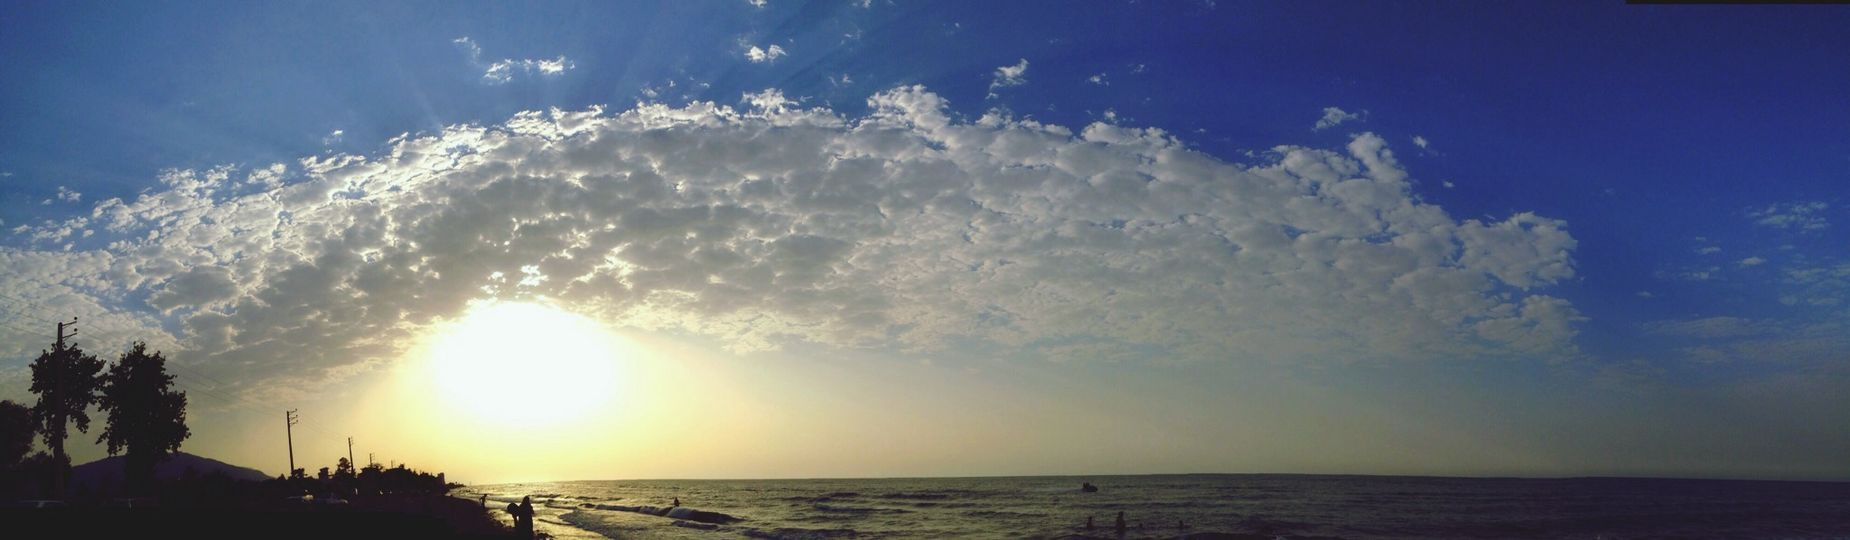 Clouds And Sky Life Is A Beach Natural panaroma , Caspian Sea In iran at north